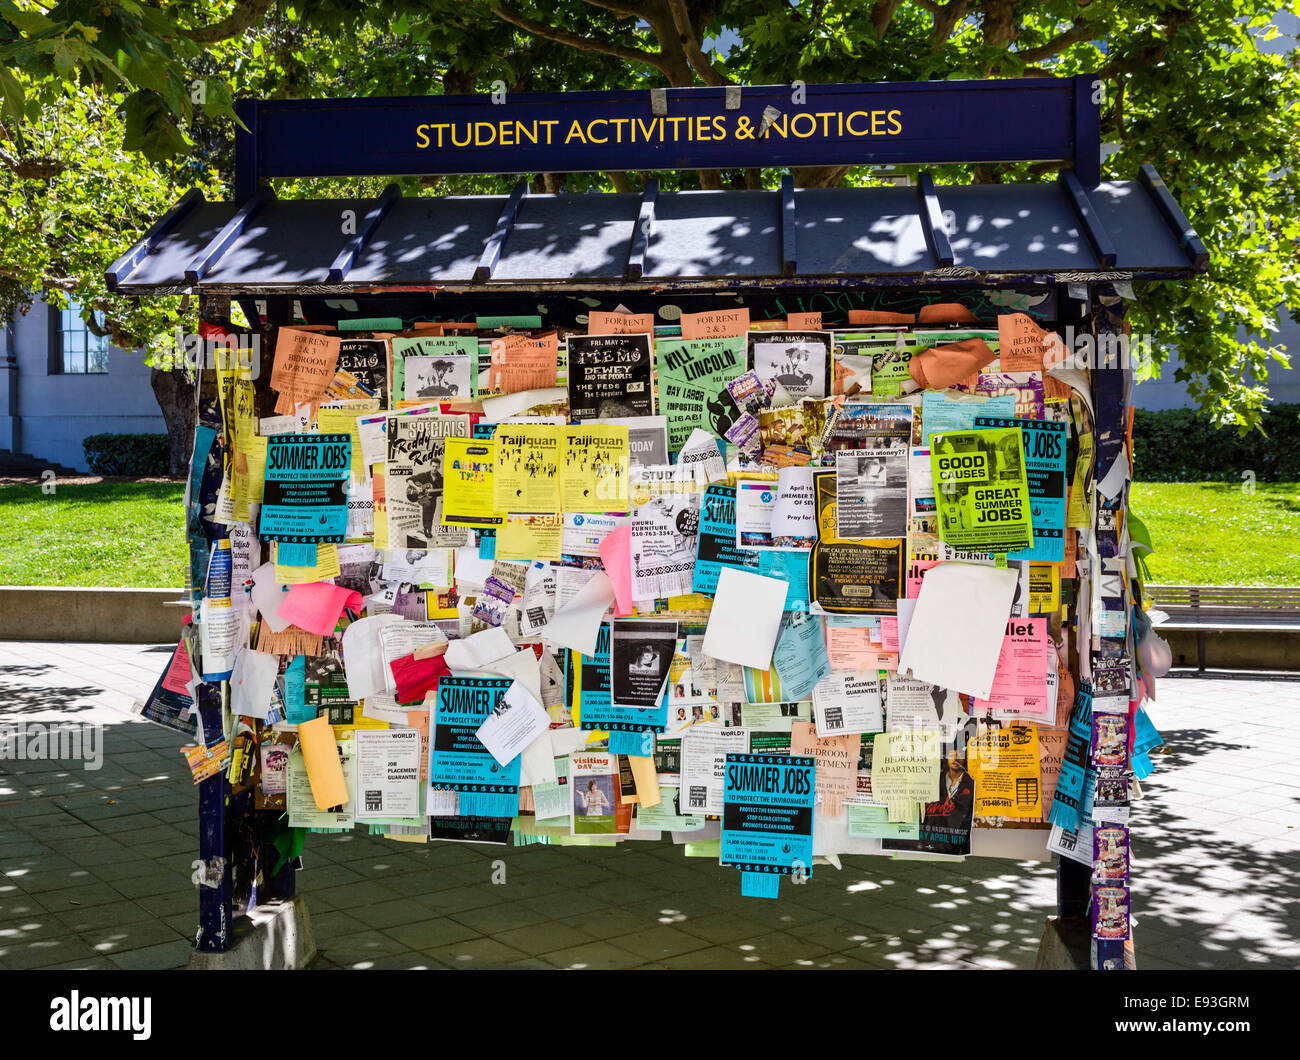 Student Notice Board on the University of California